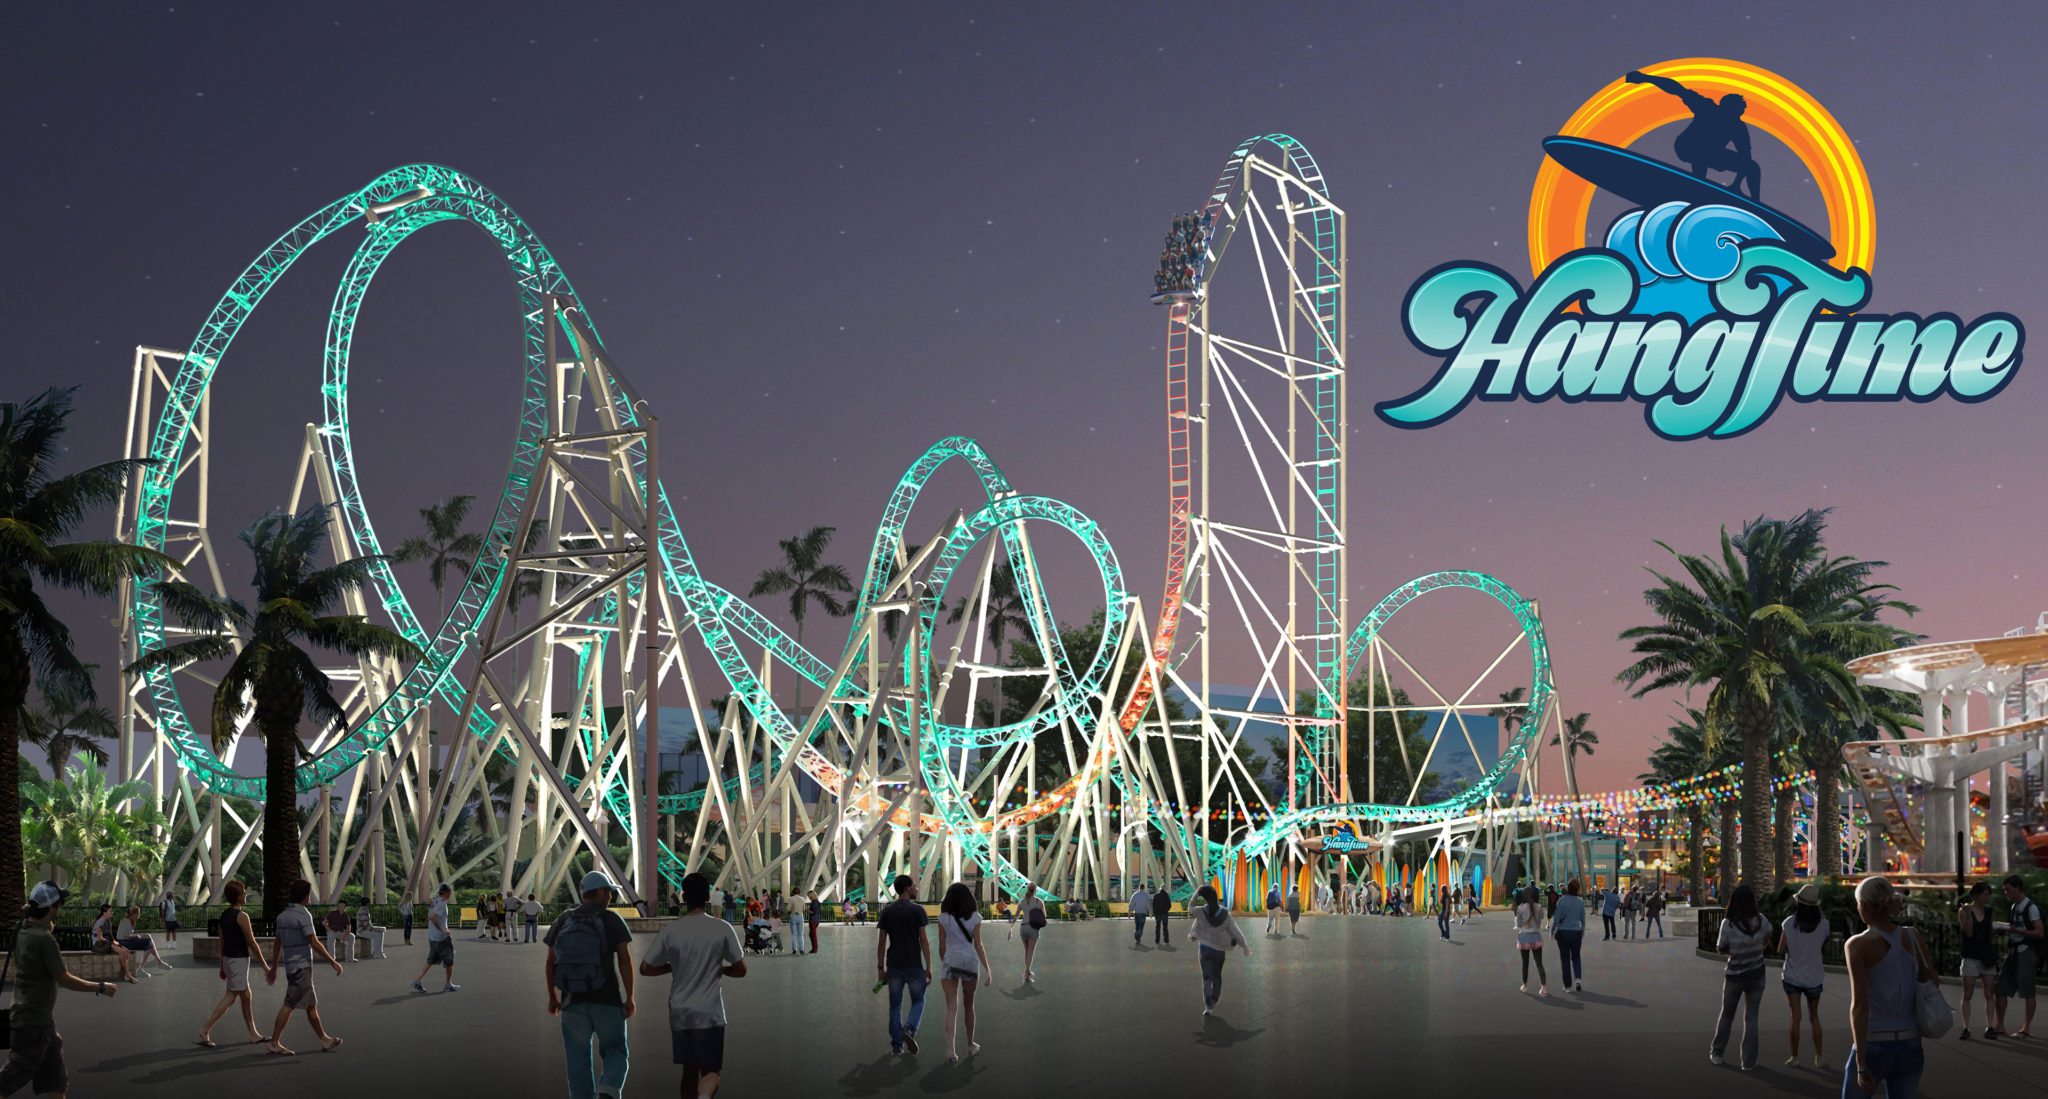 Knotts Berry Farm HangTime Night Time Rendering With Logo